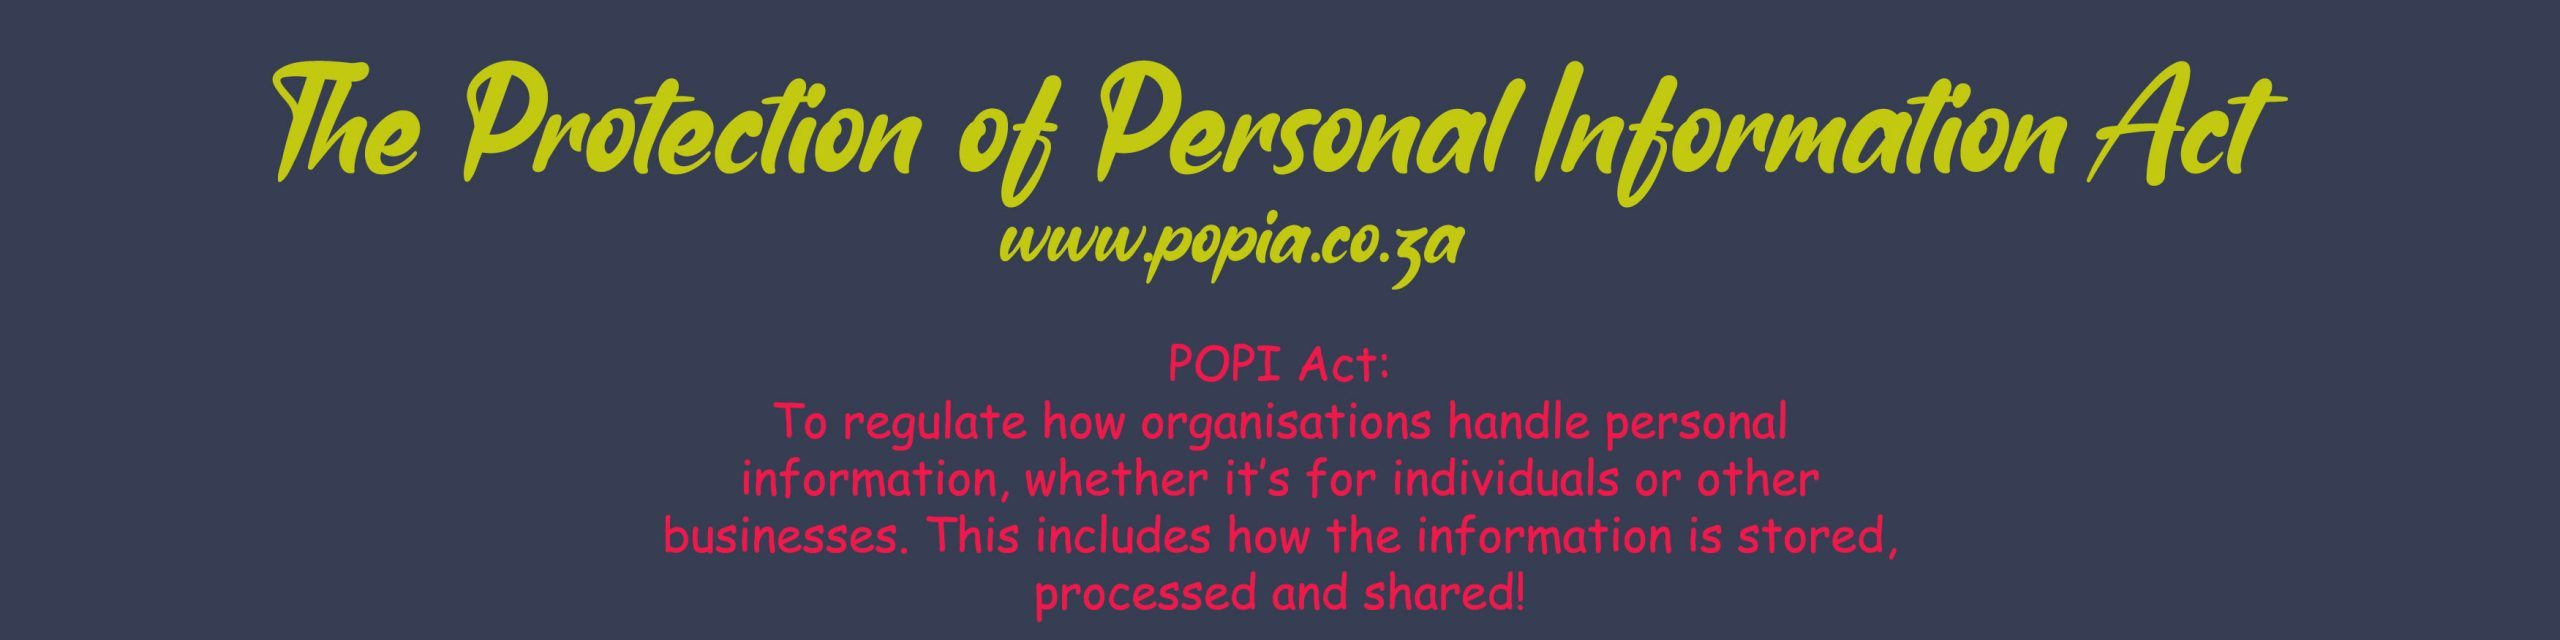 The Protection of Personal Information Act Explained